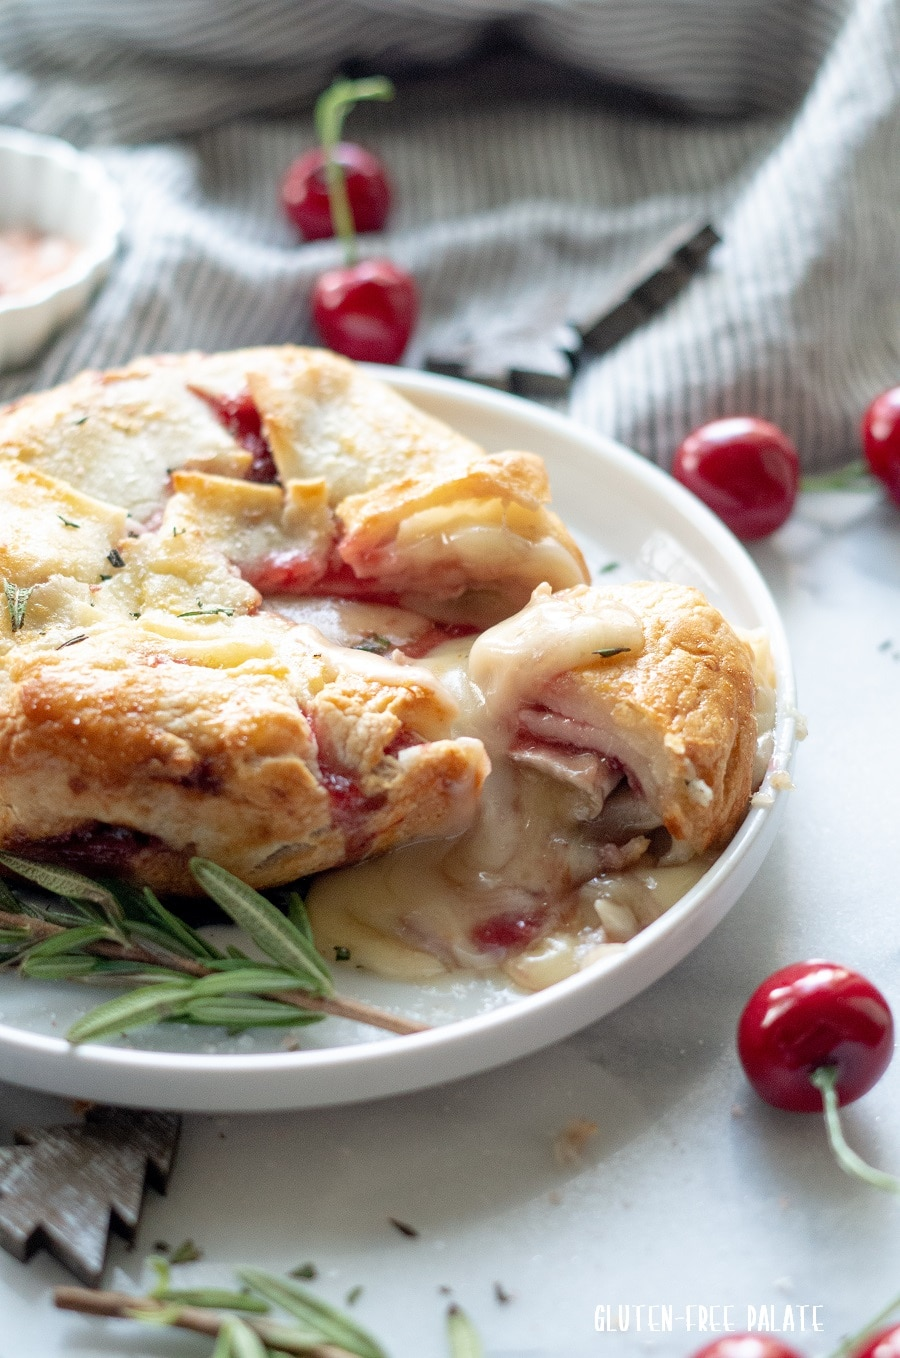 a side view of baked brie wrapped in puff pastry on a white plate with rosemary springs and cherries